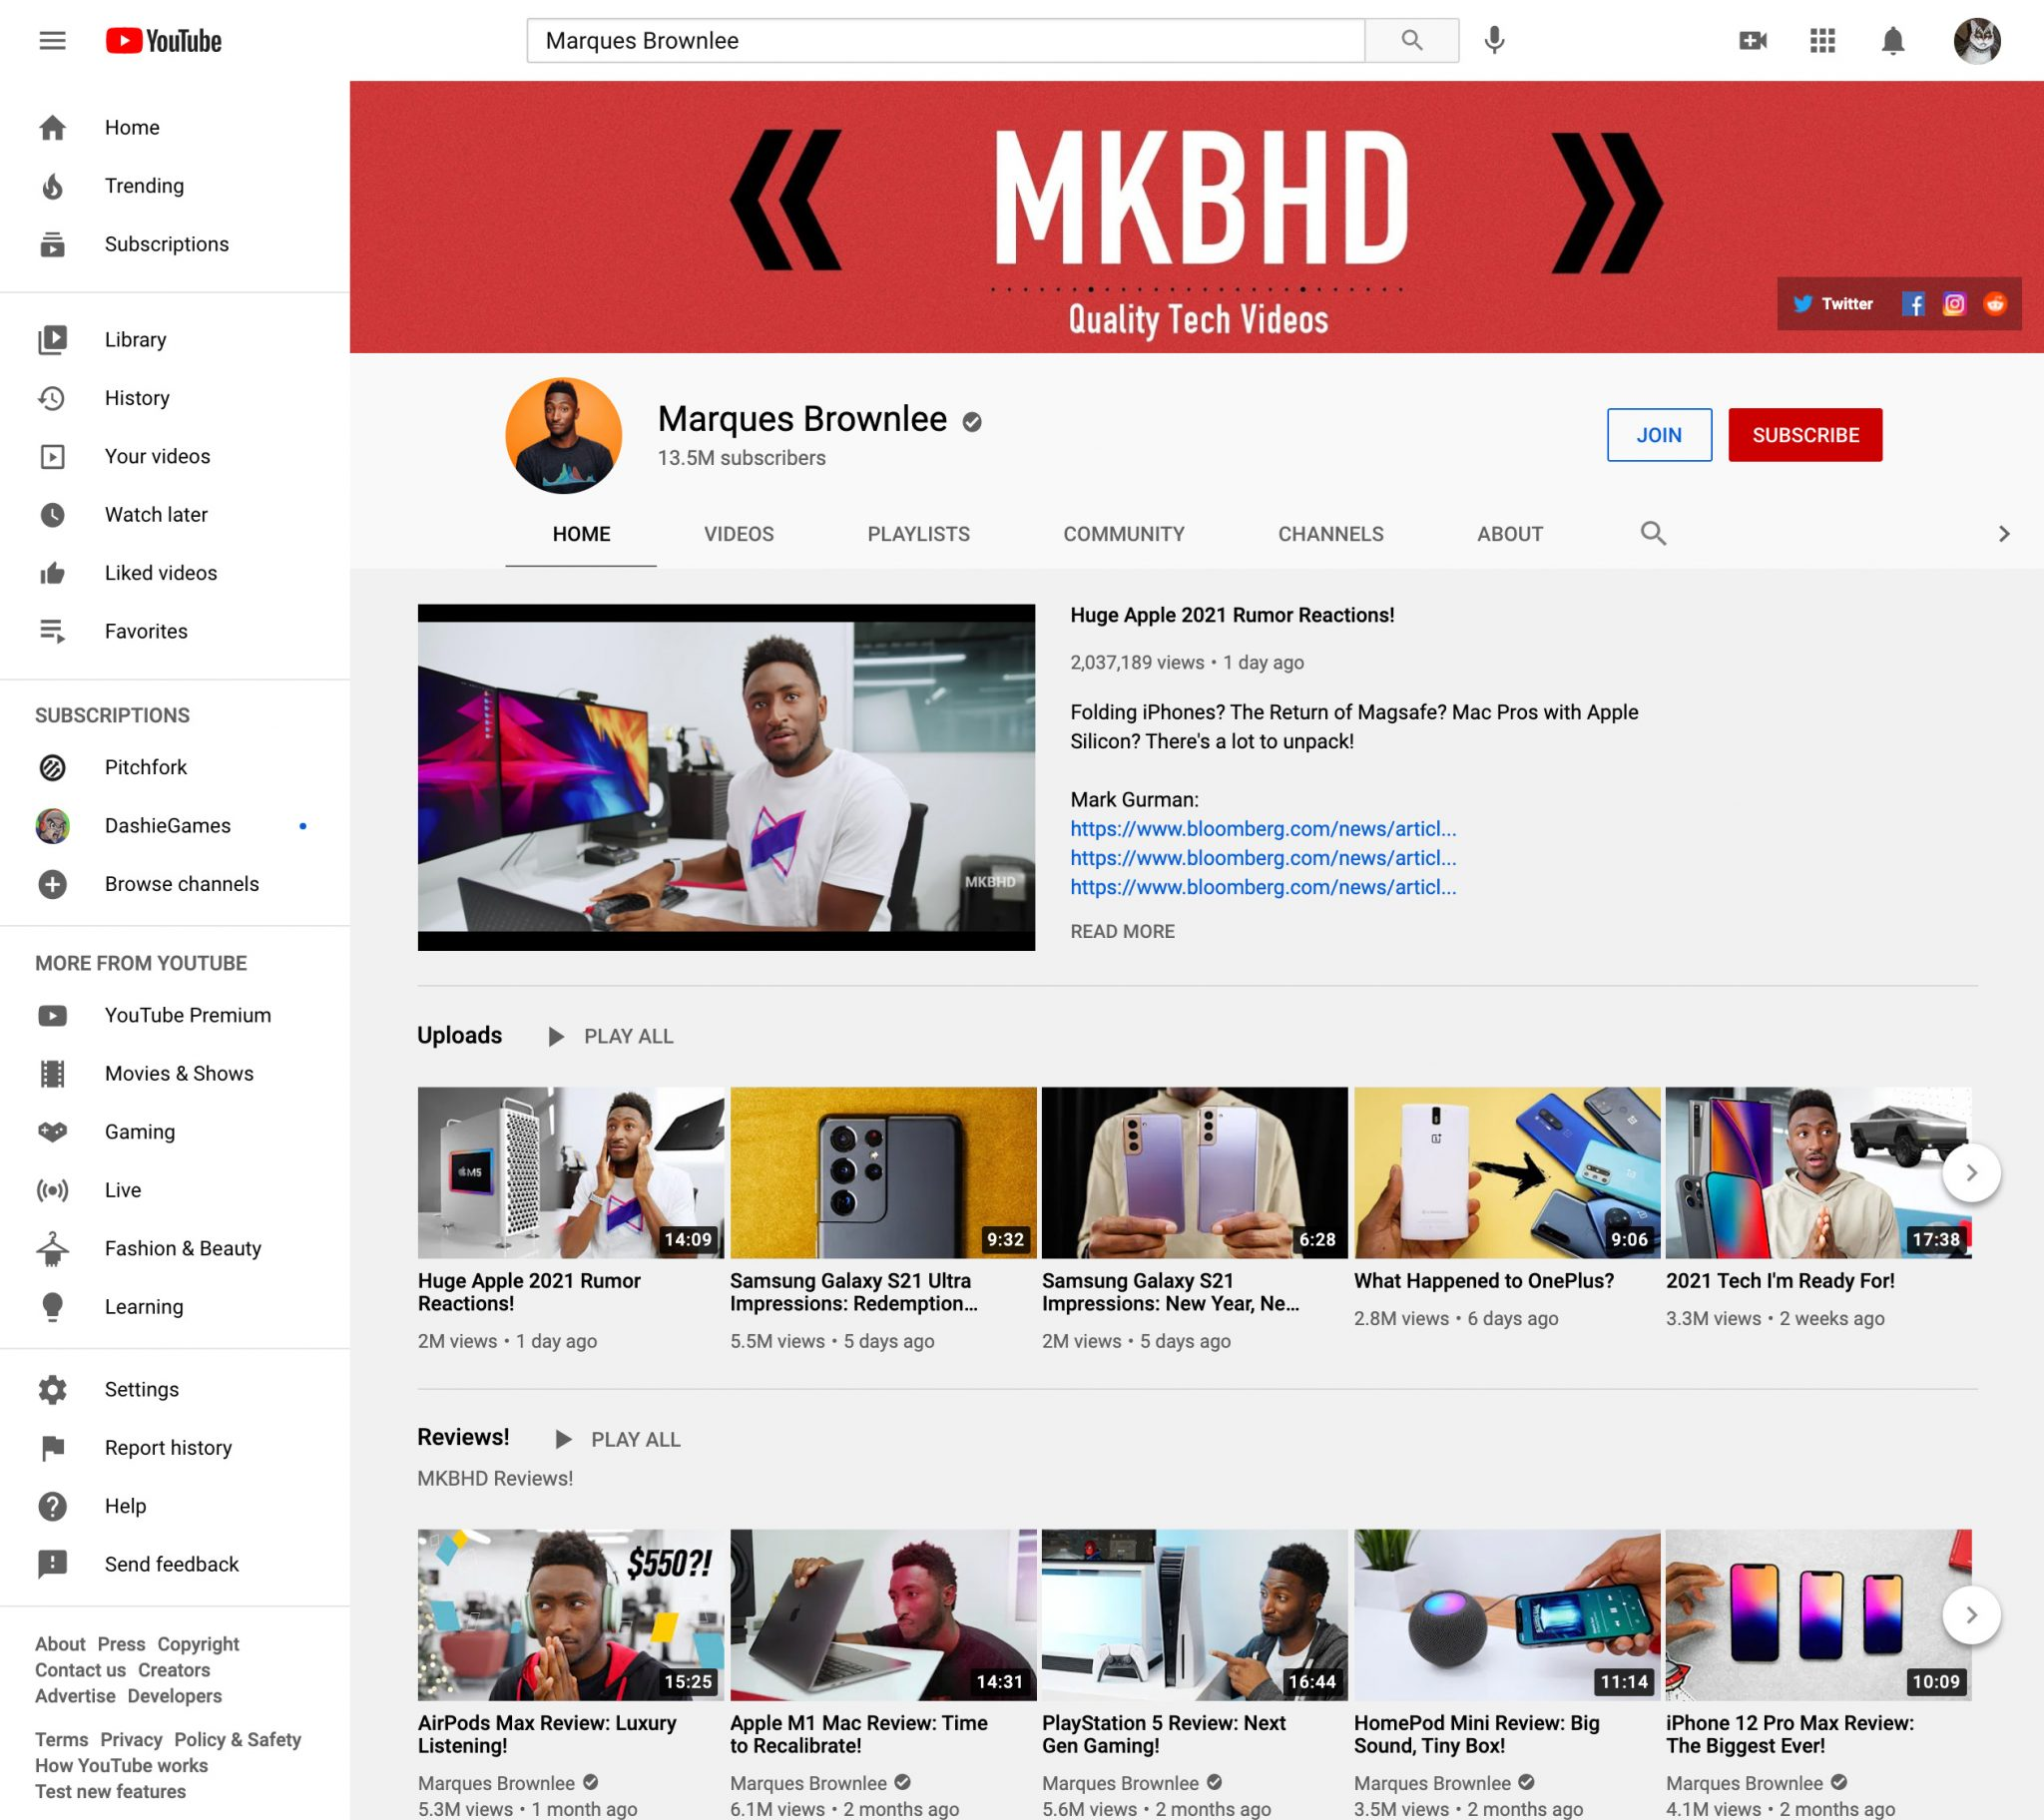 MKBHD Marques Brownlee youtube influencer page